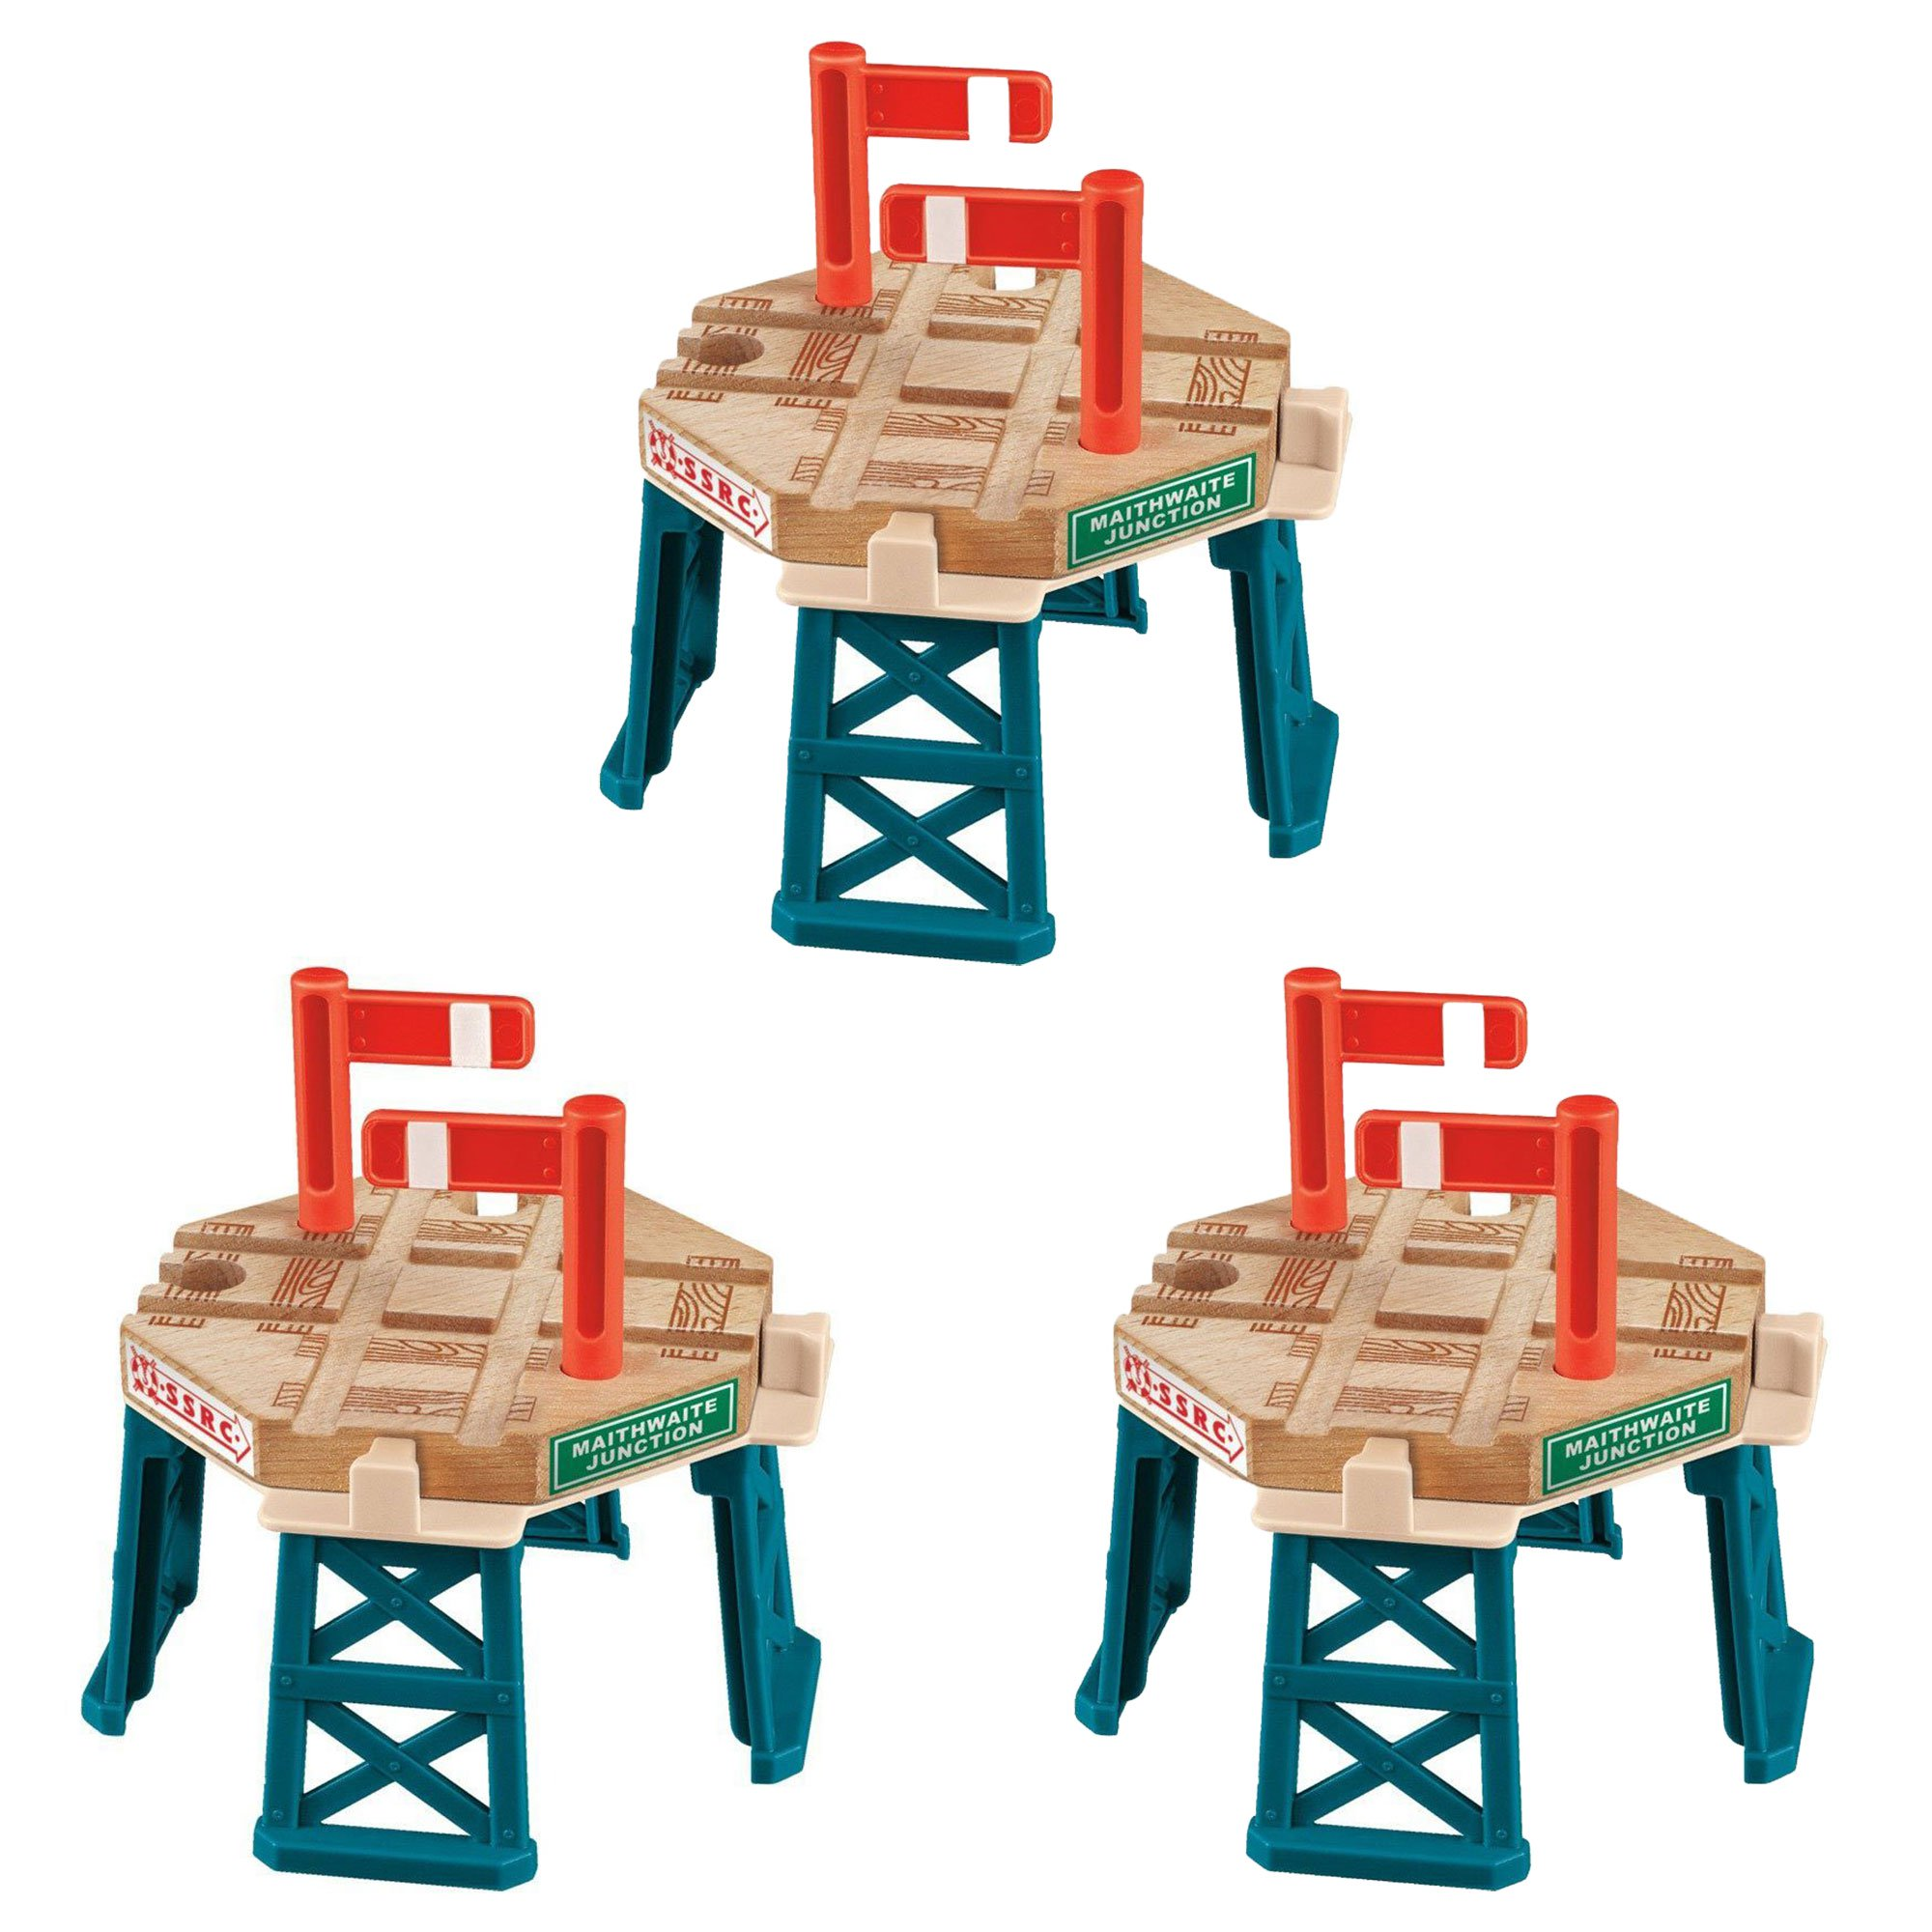 Fisher Price Thomas and Friends Wooden Train Railway Crossing Gate (3 Pack)